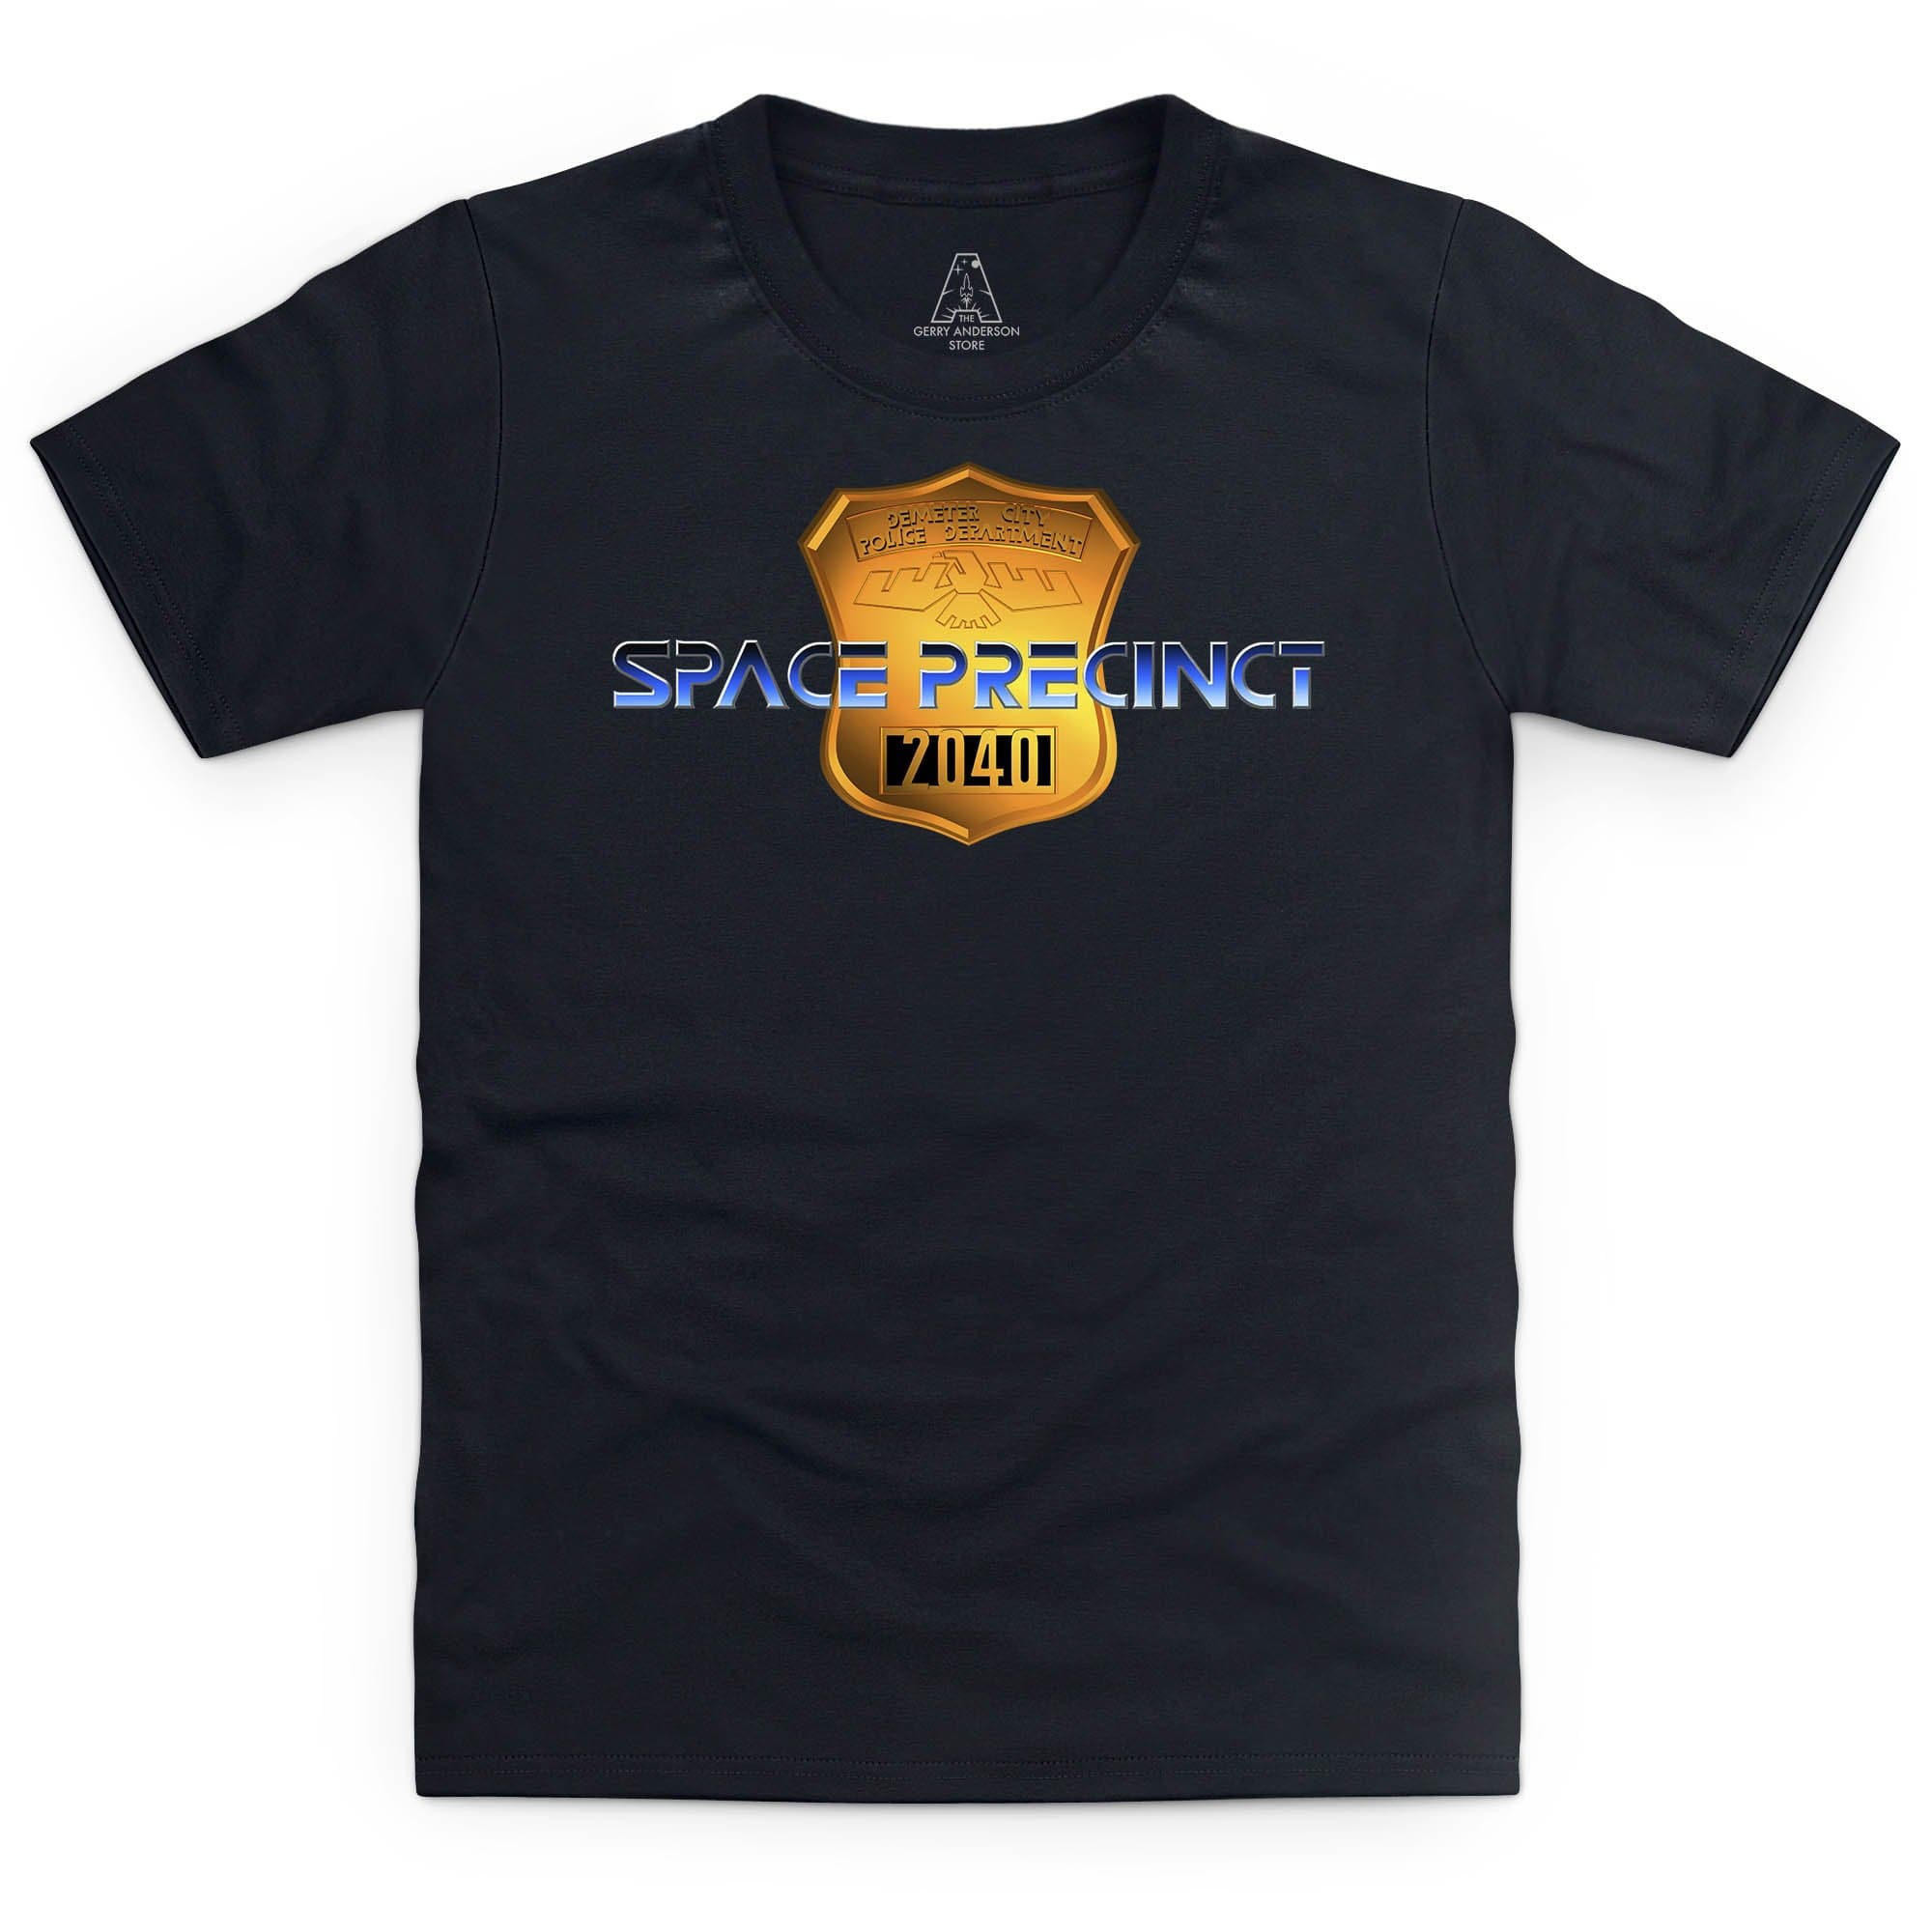 Space Precinct Logo Kid's T-Shirt [Official & Exclusive] - The Gerry Anderson Store